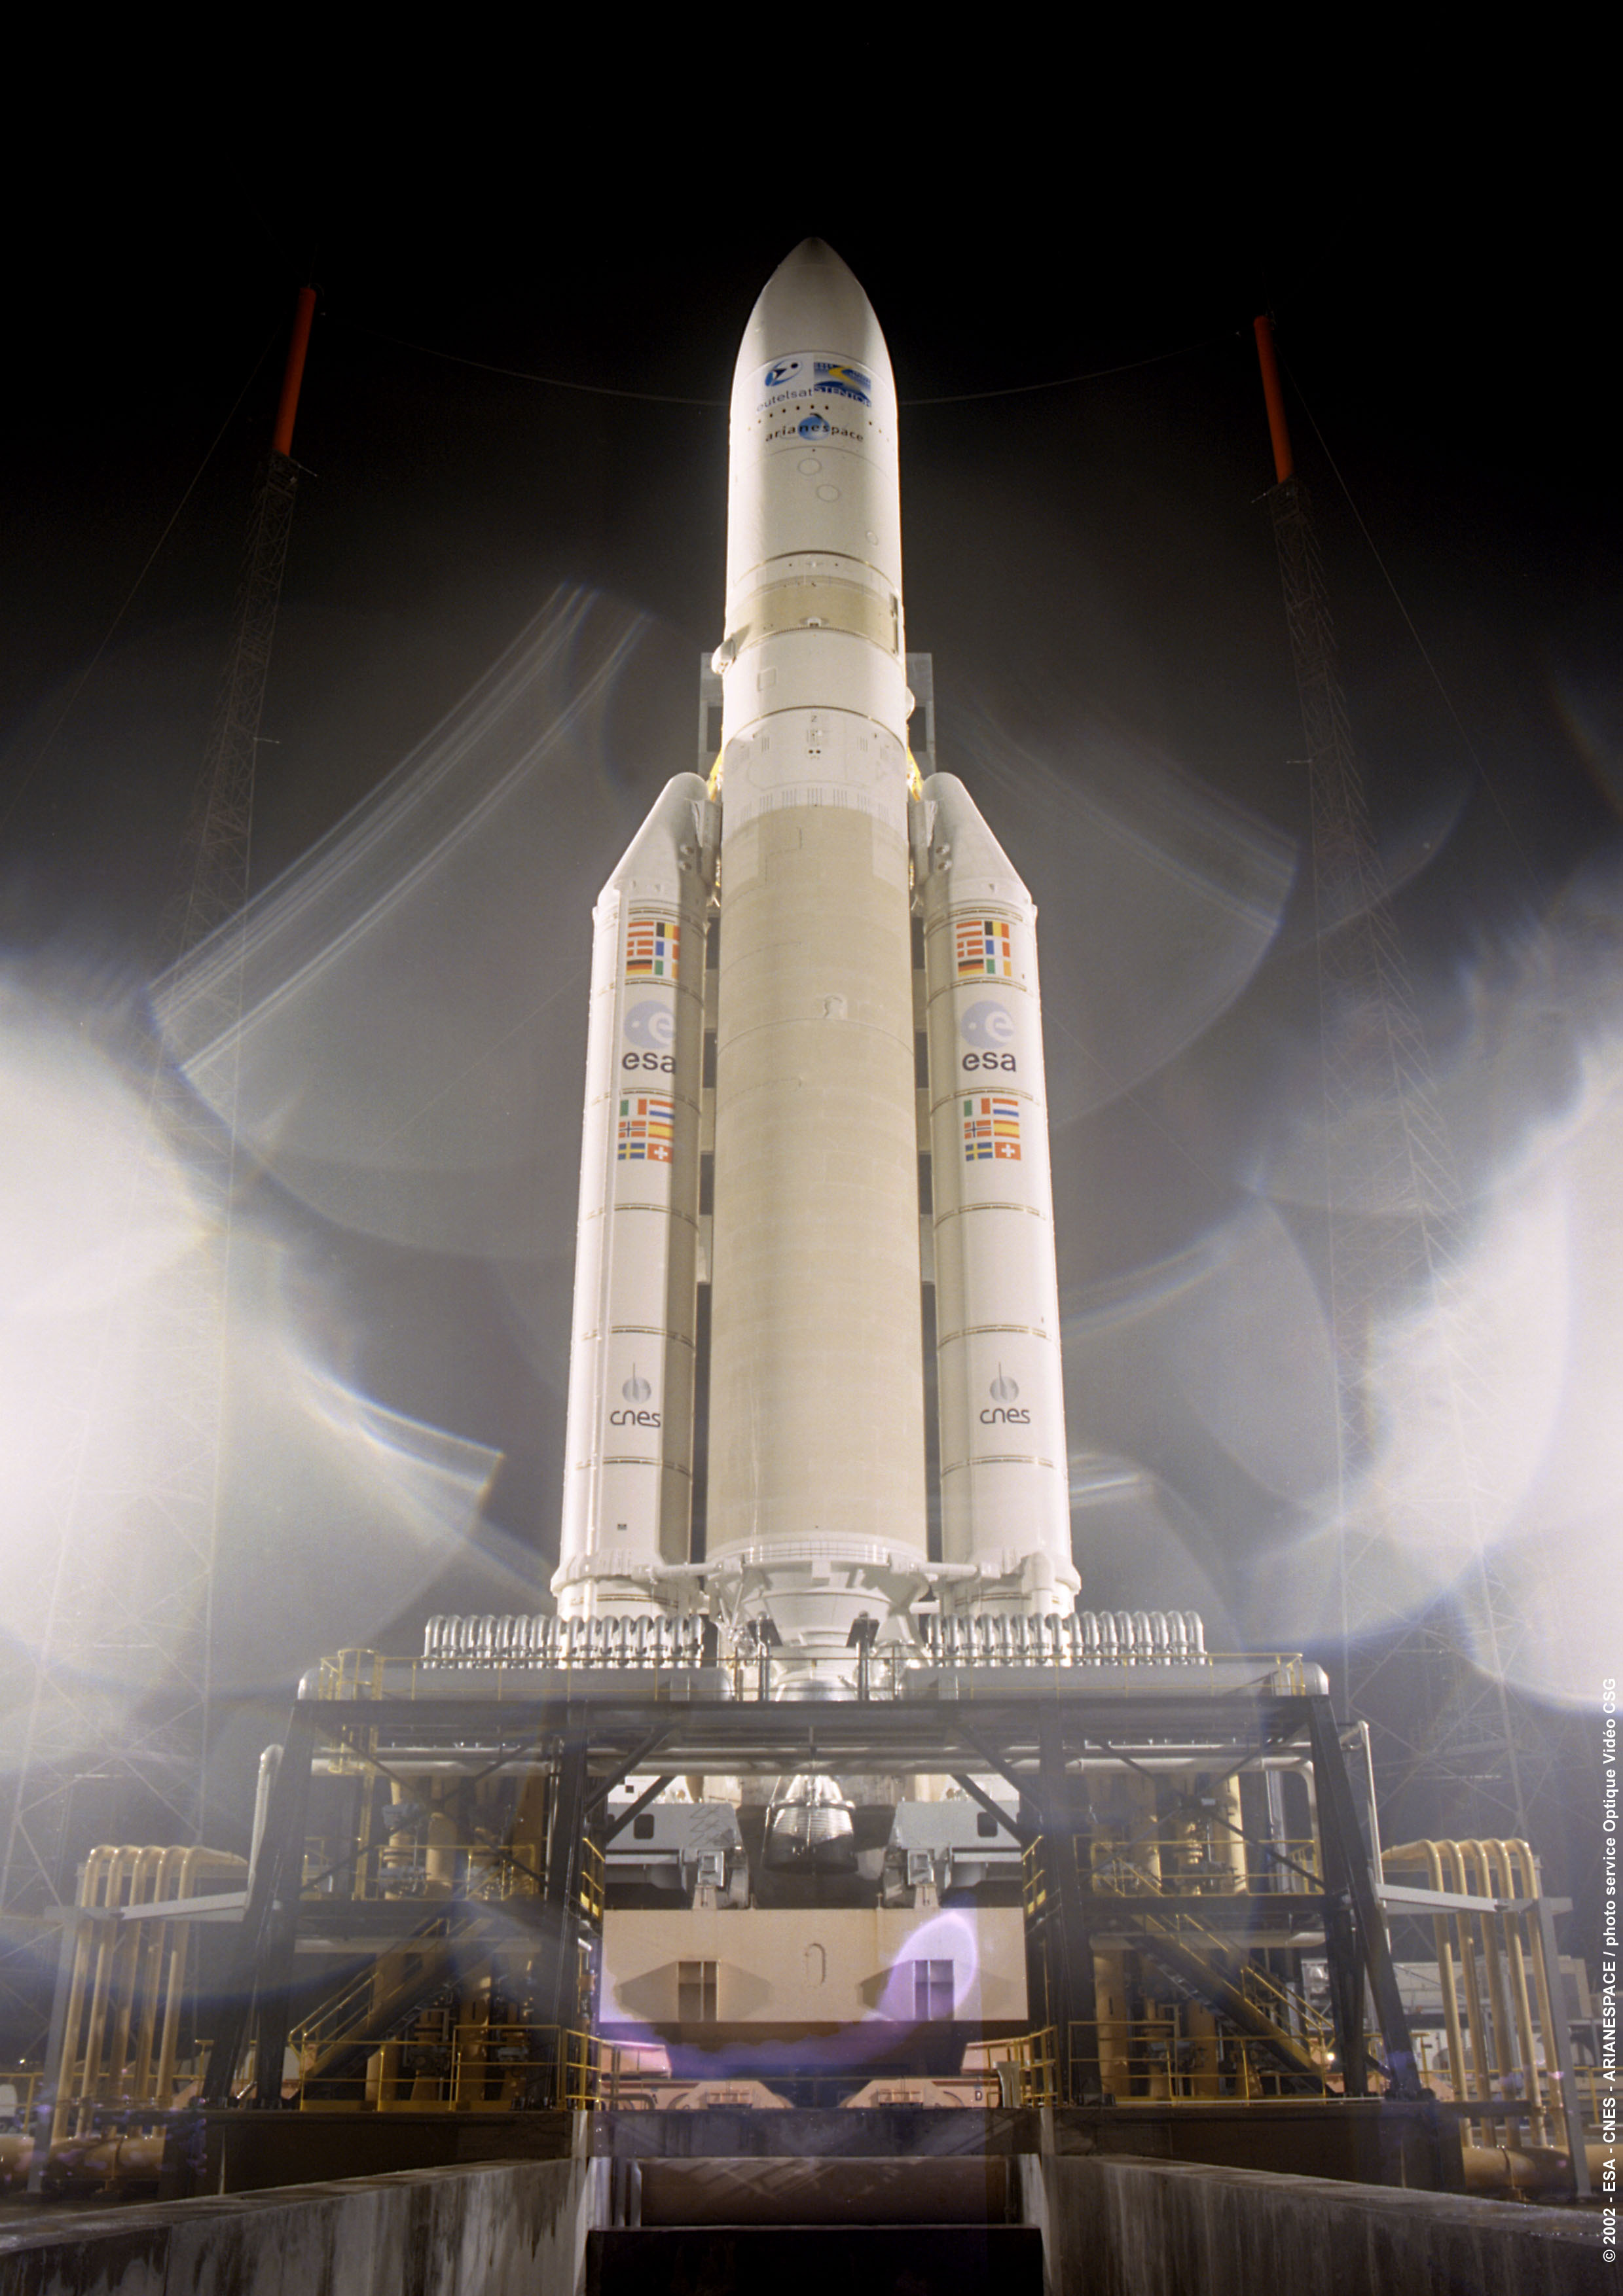 http://www.esa.int/var/esa/storage/images/esa_multimedia/images/2002/11/flight_157_ariane_5_eca_on_the_launch_pad/9182326-5-eng-GB/Flight_157_Ariane_5_ECA_on_the_launch_pad.jpg